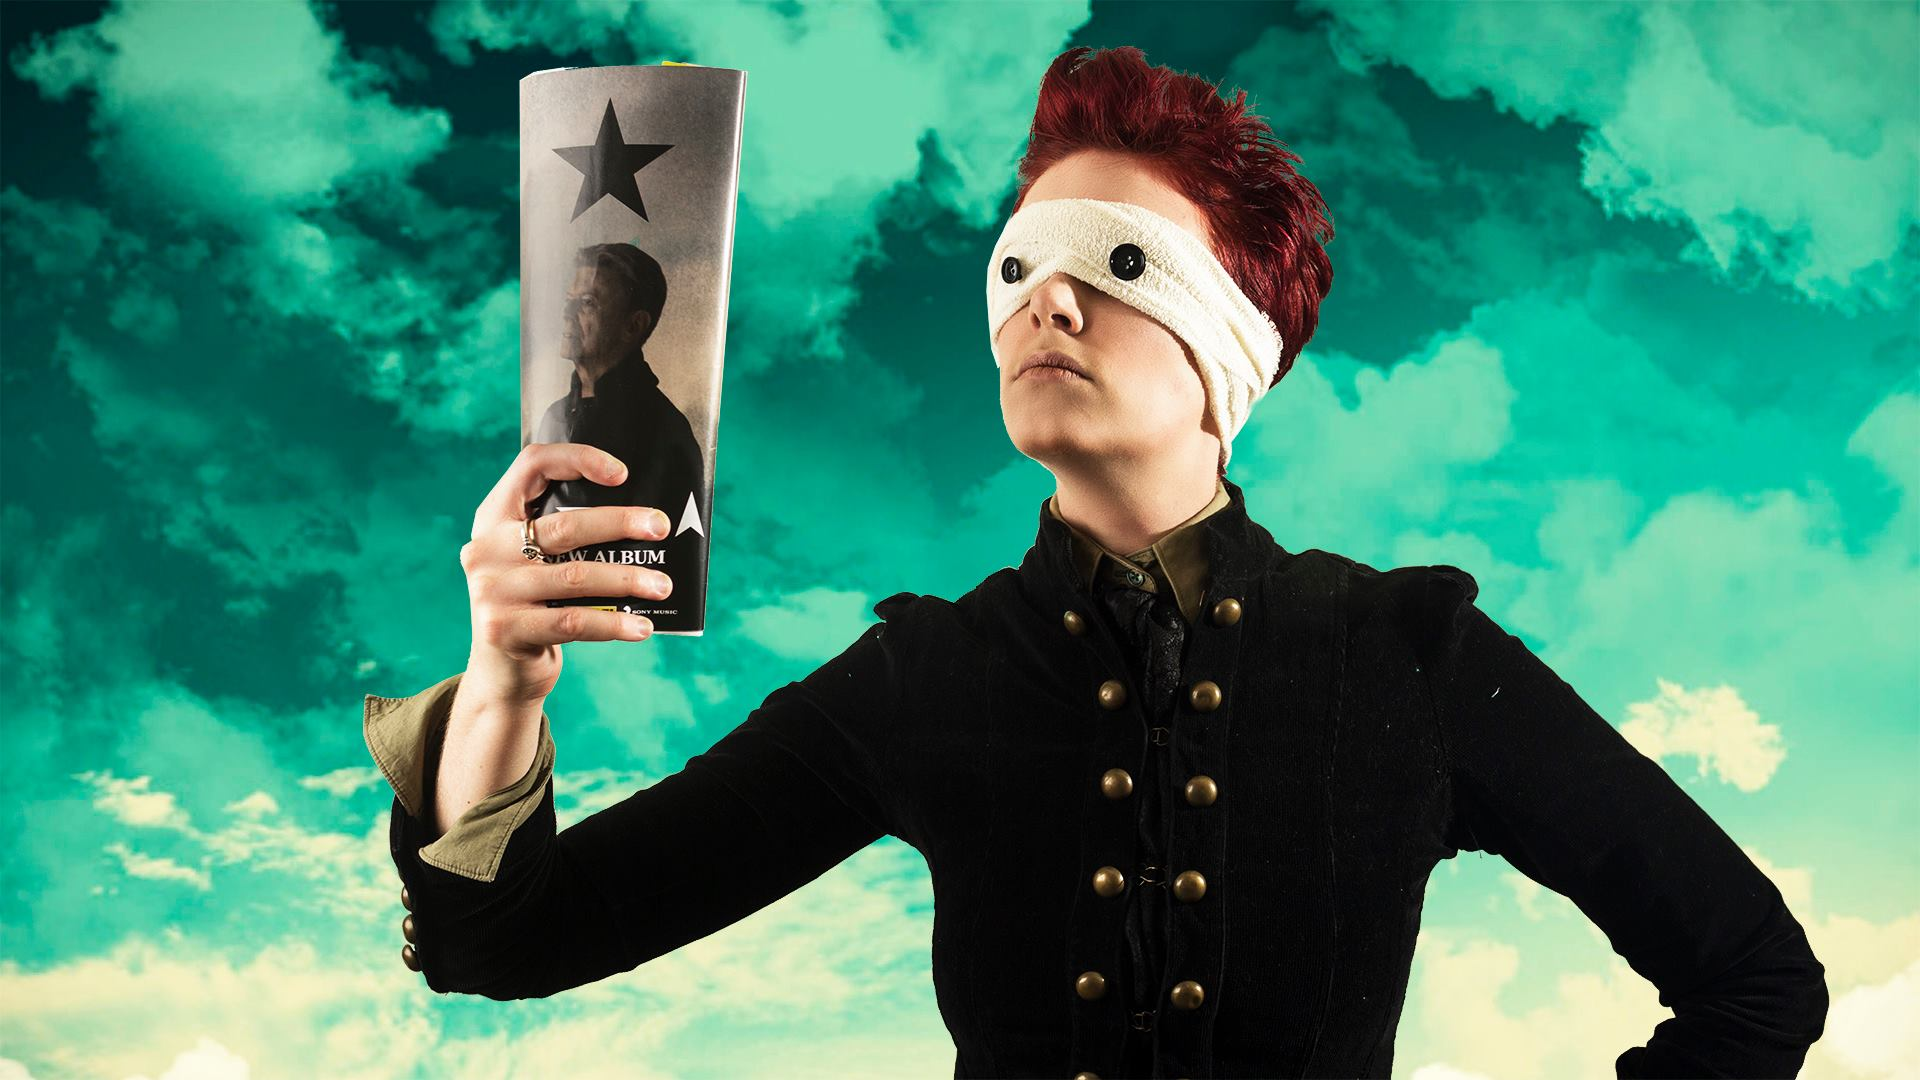 Photo Collection Black Star David Bowie Wallpaper